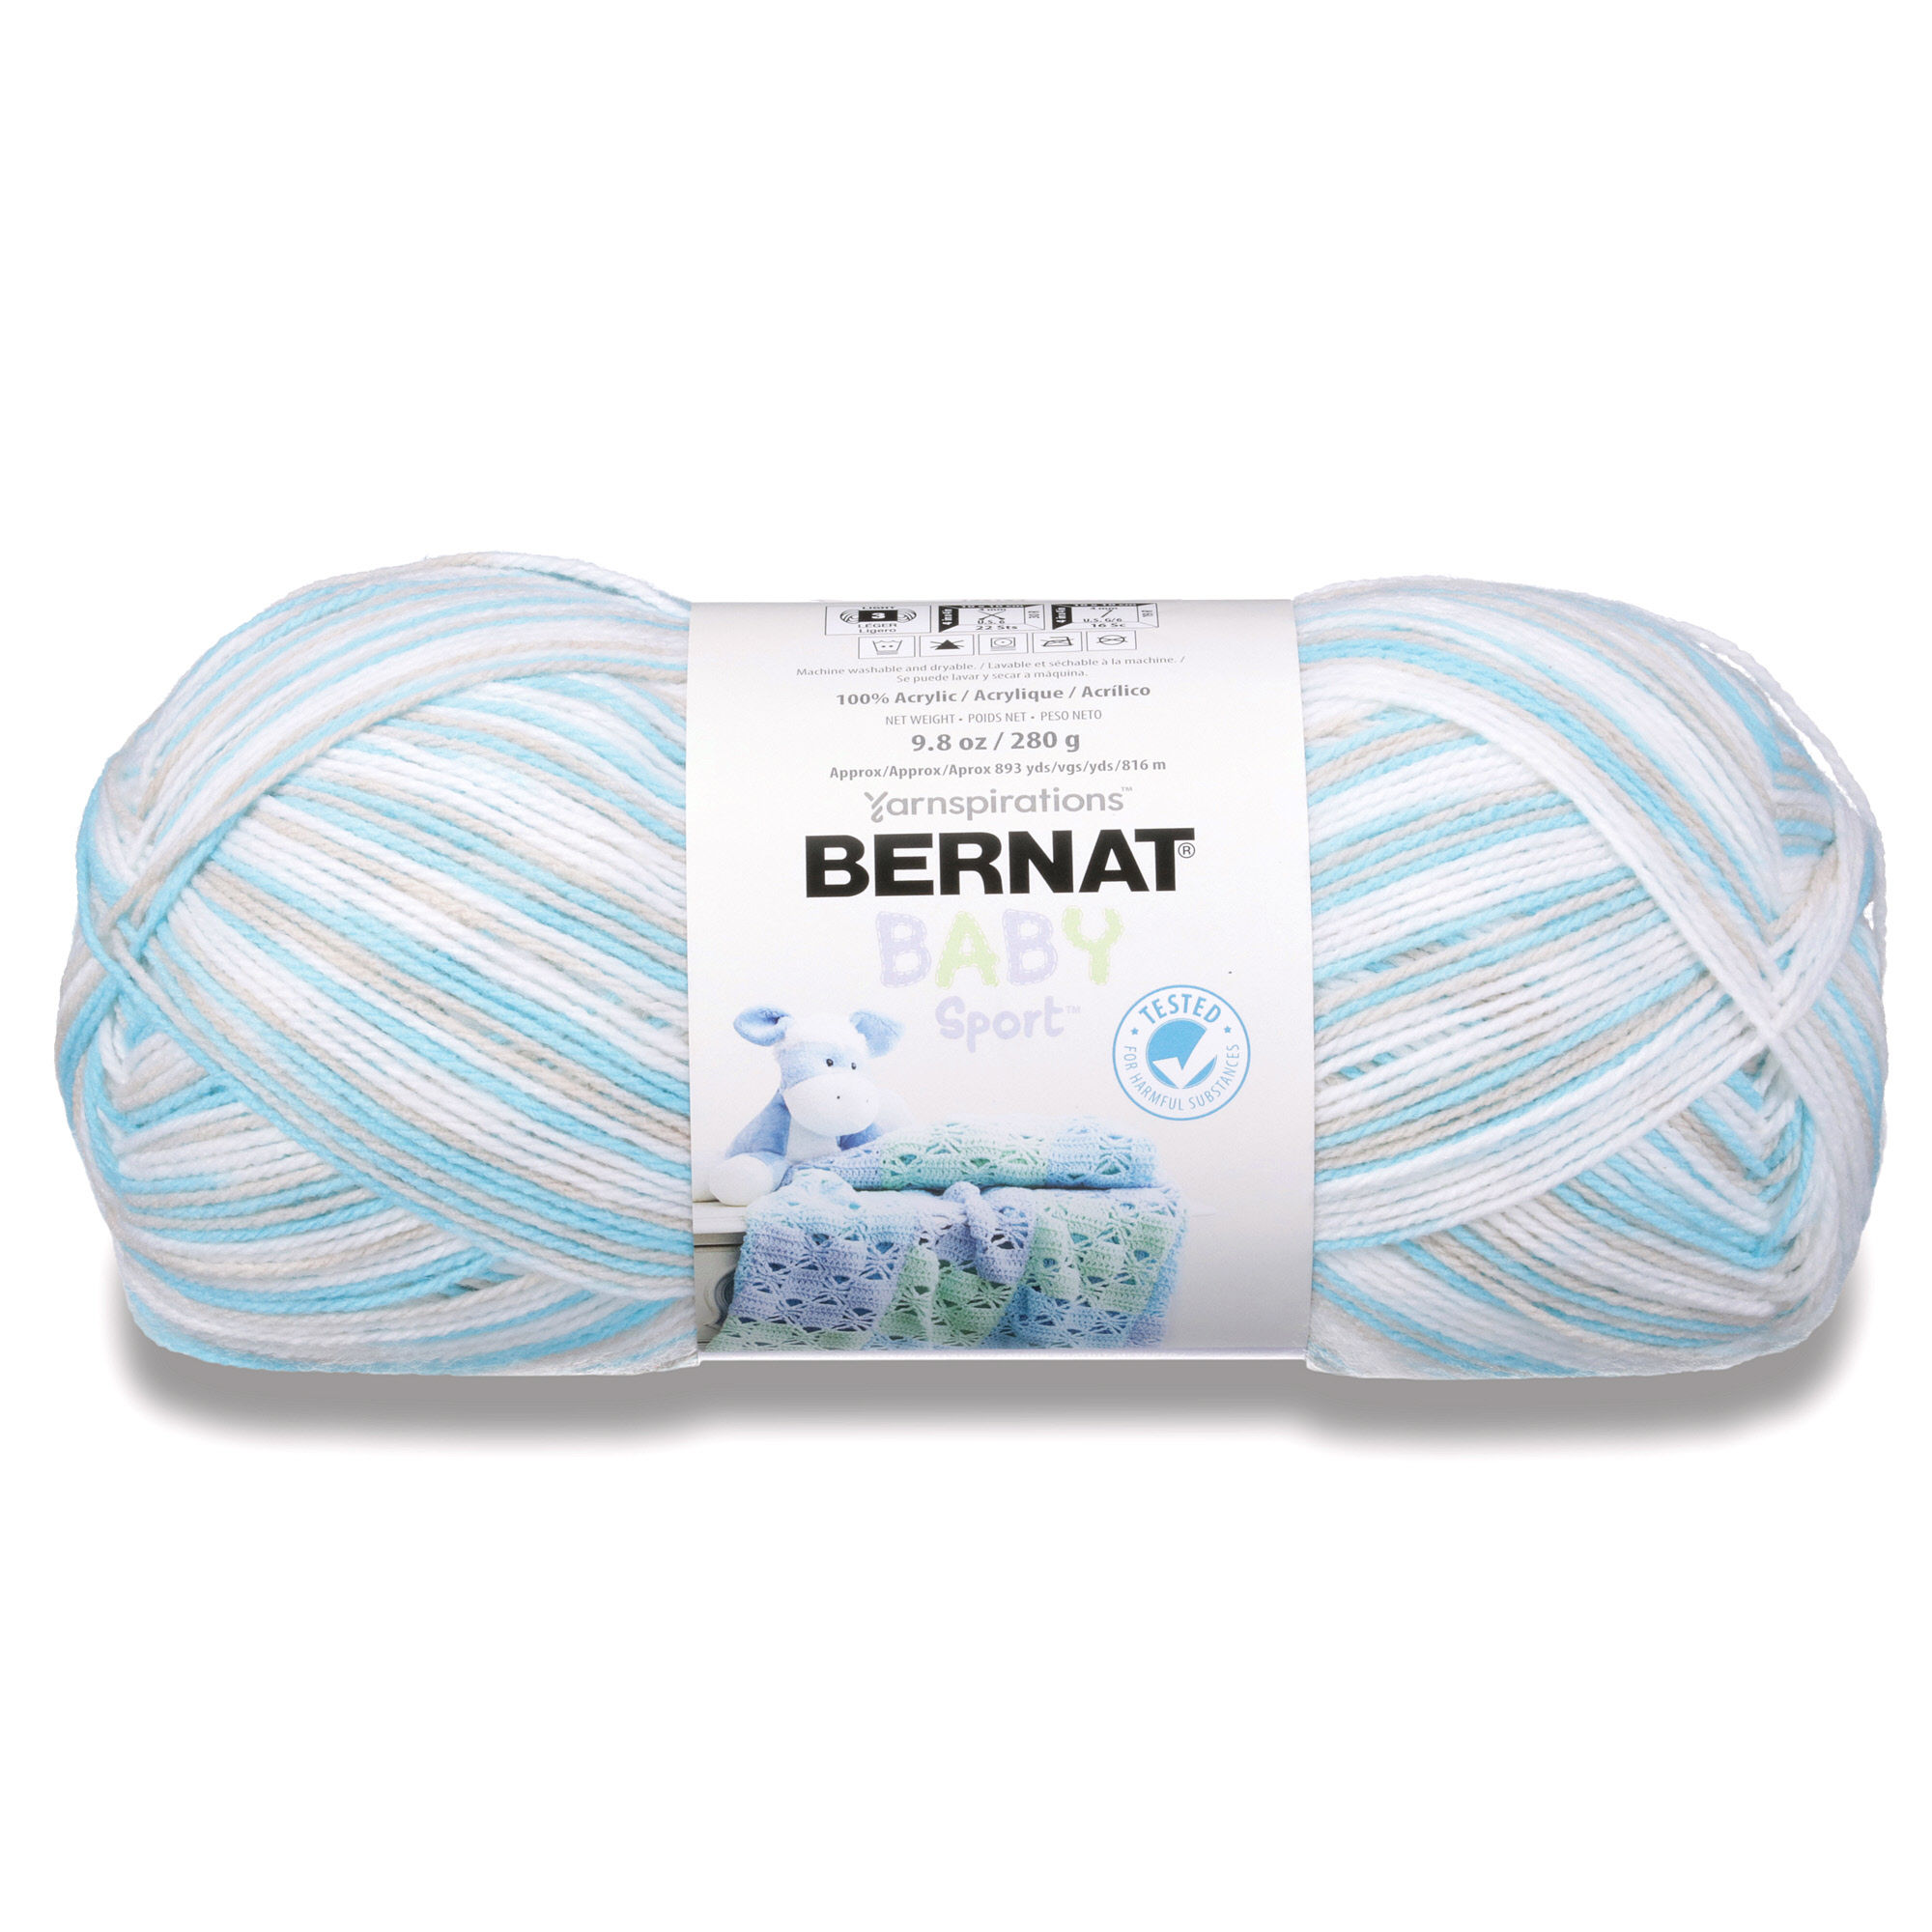 BERNAT BABY SPORT OMBRES YARN (280G/9.8 OZ), POPSICLE BLUE OMBRE